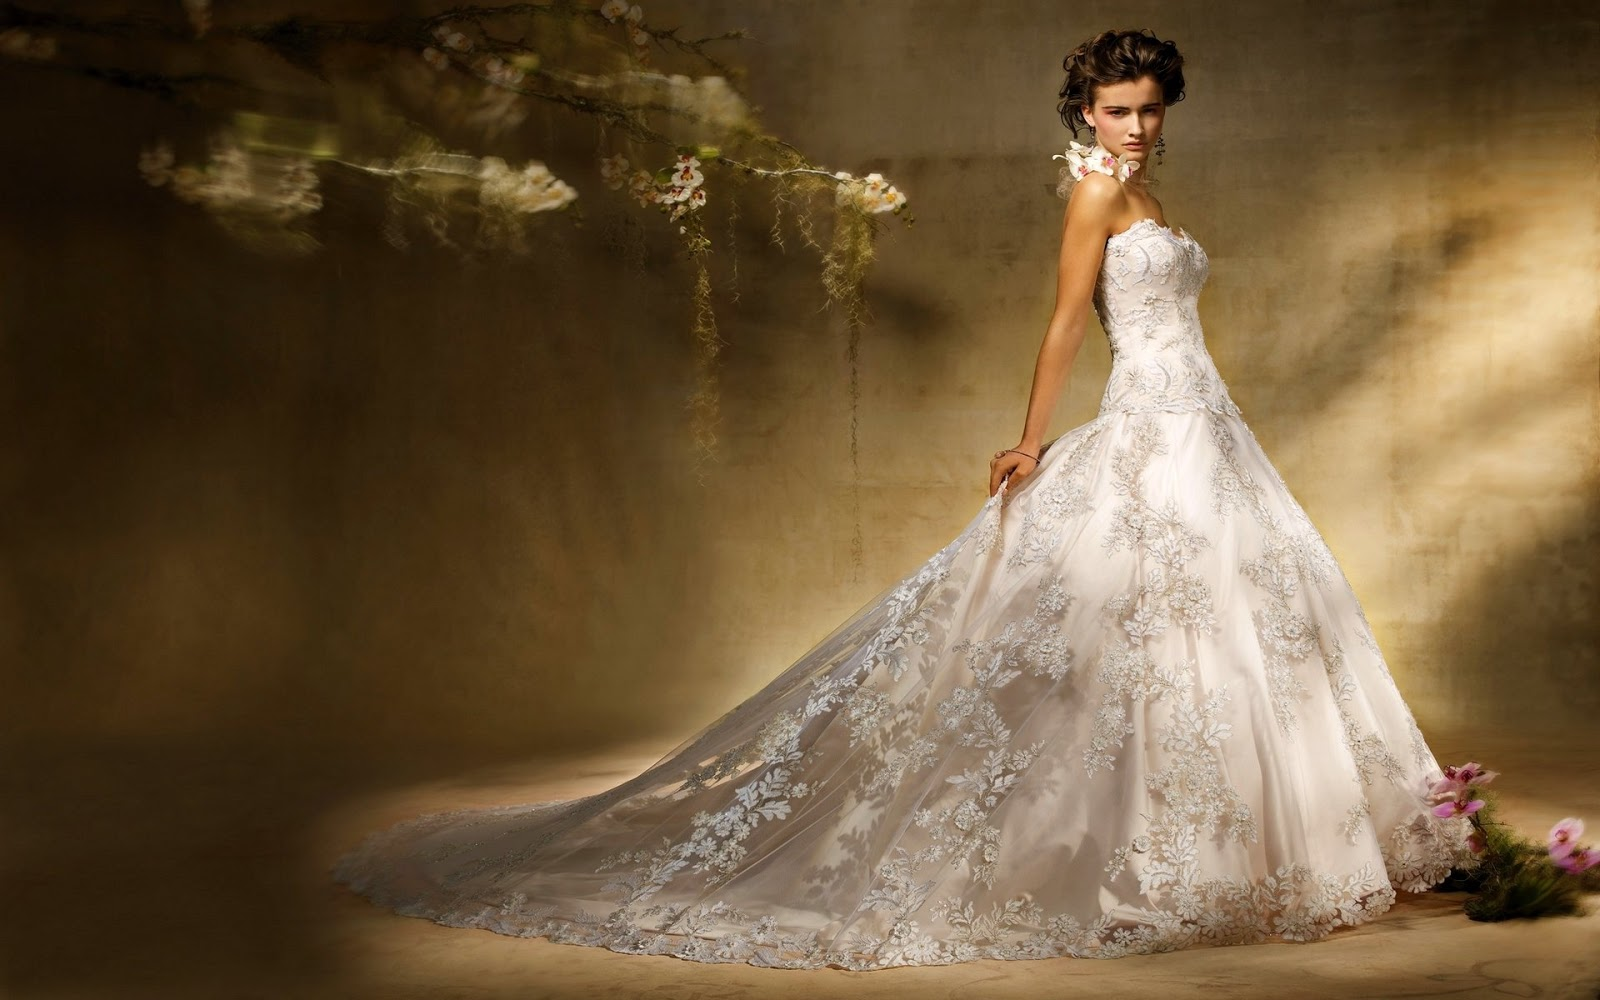 Wedding Gowns Pic: Gallery Of Wedding Dress: White-Lace-Wedding-Dresses-2013